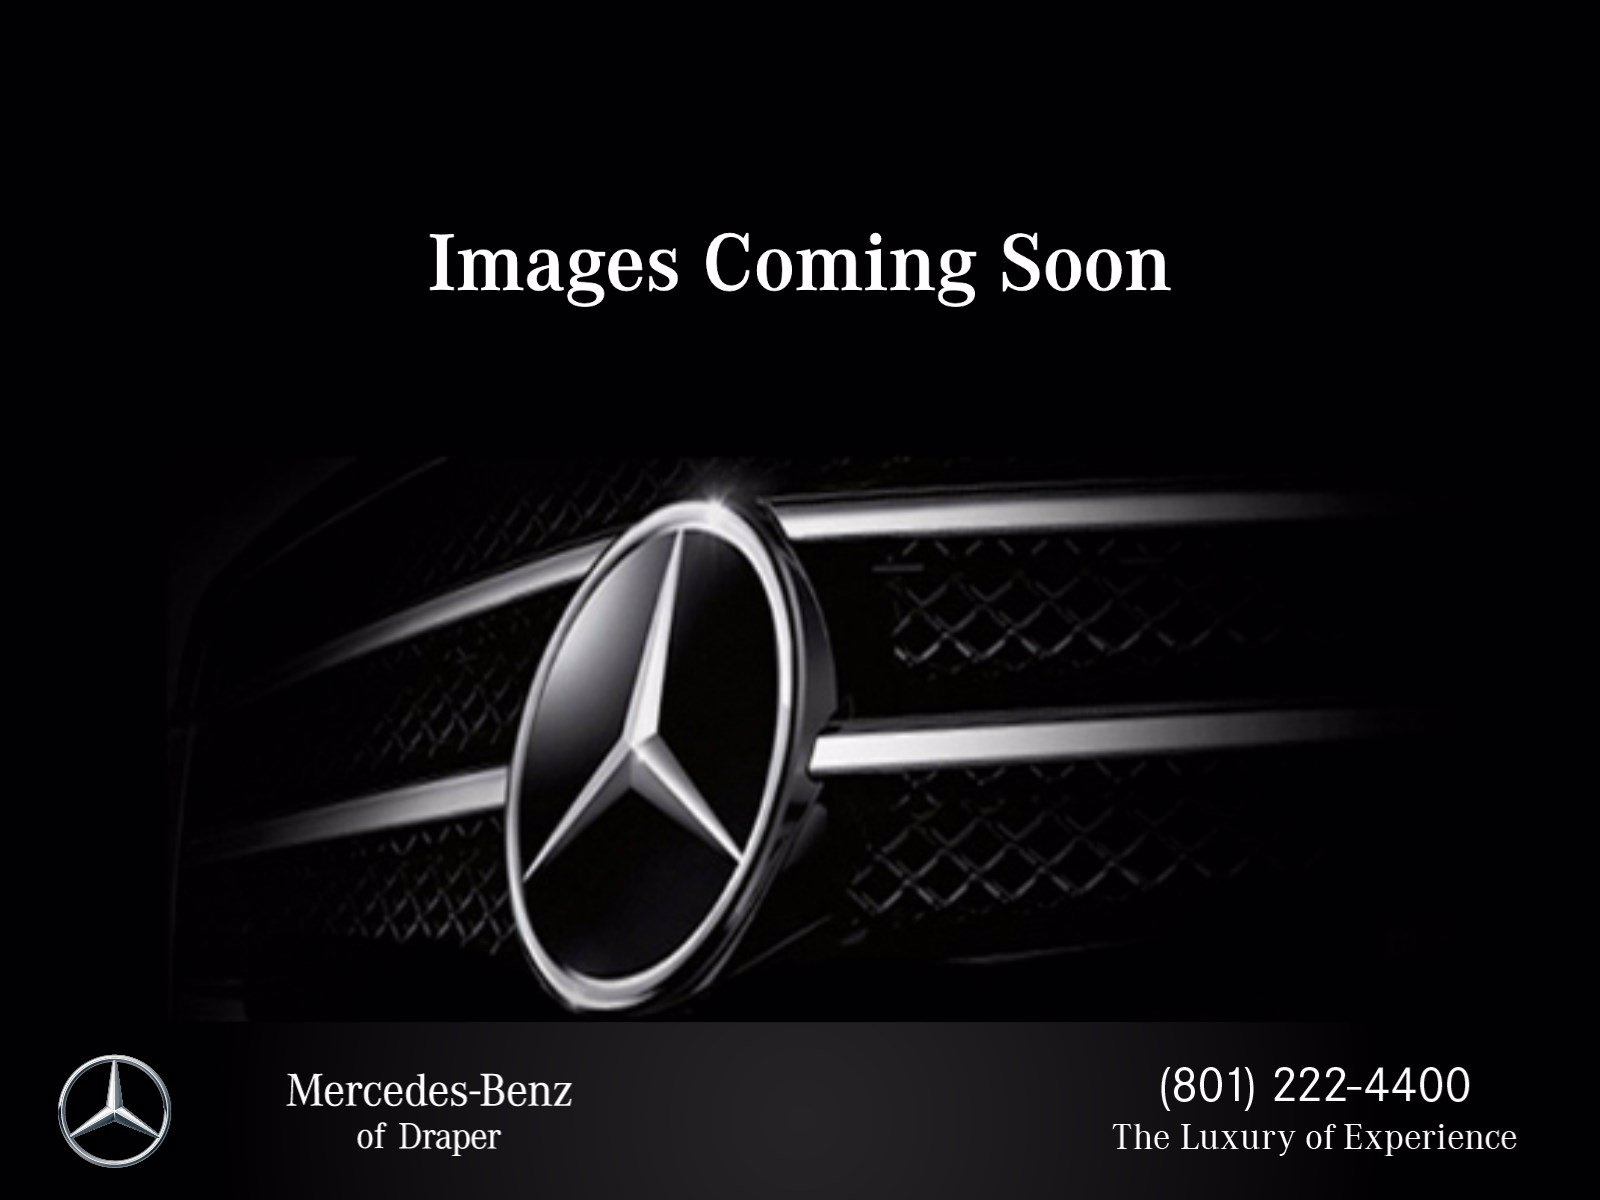 New 2020 Mercedes-Benz Sprinter Full-size Cargo Vans 2500 High Roof V6 144 4WD